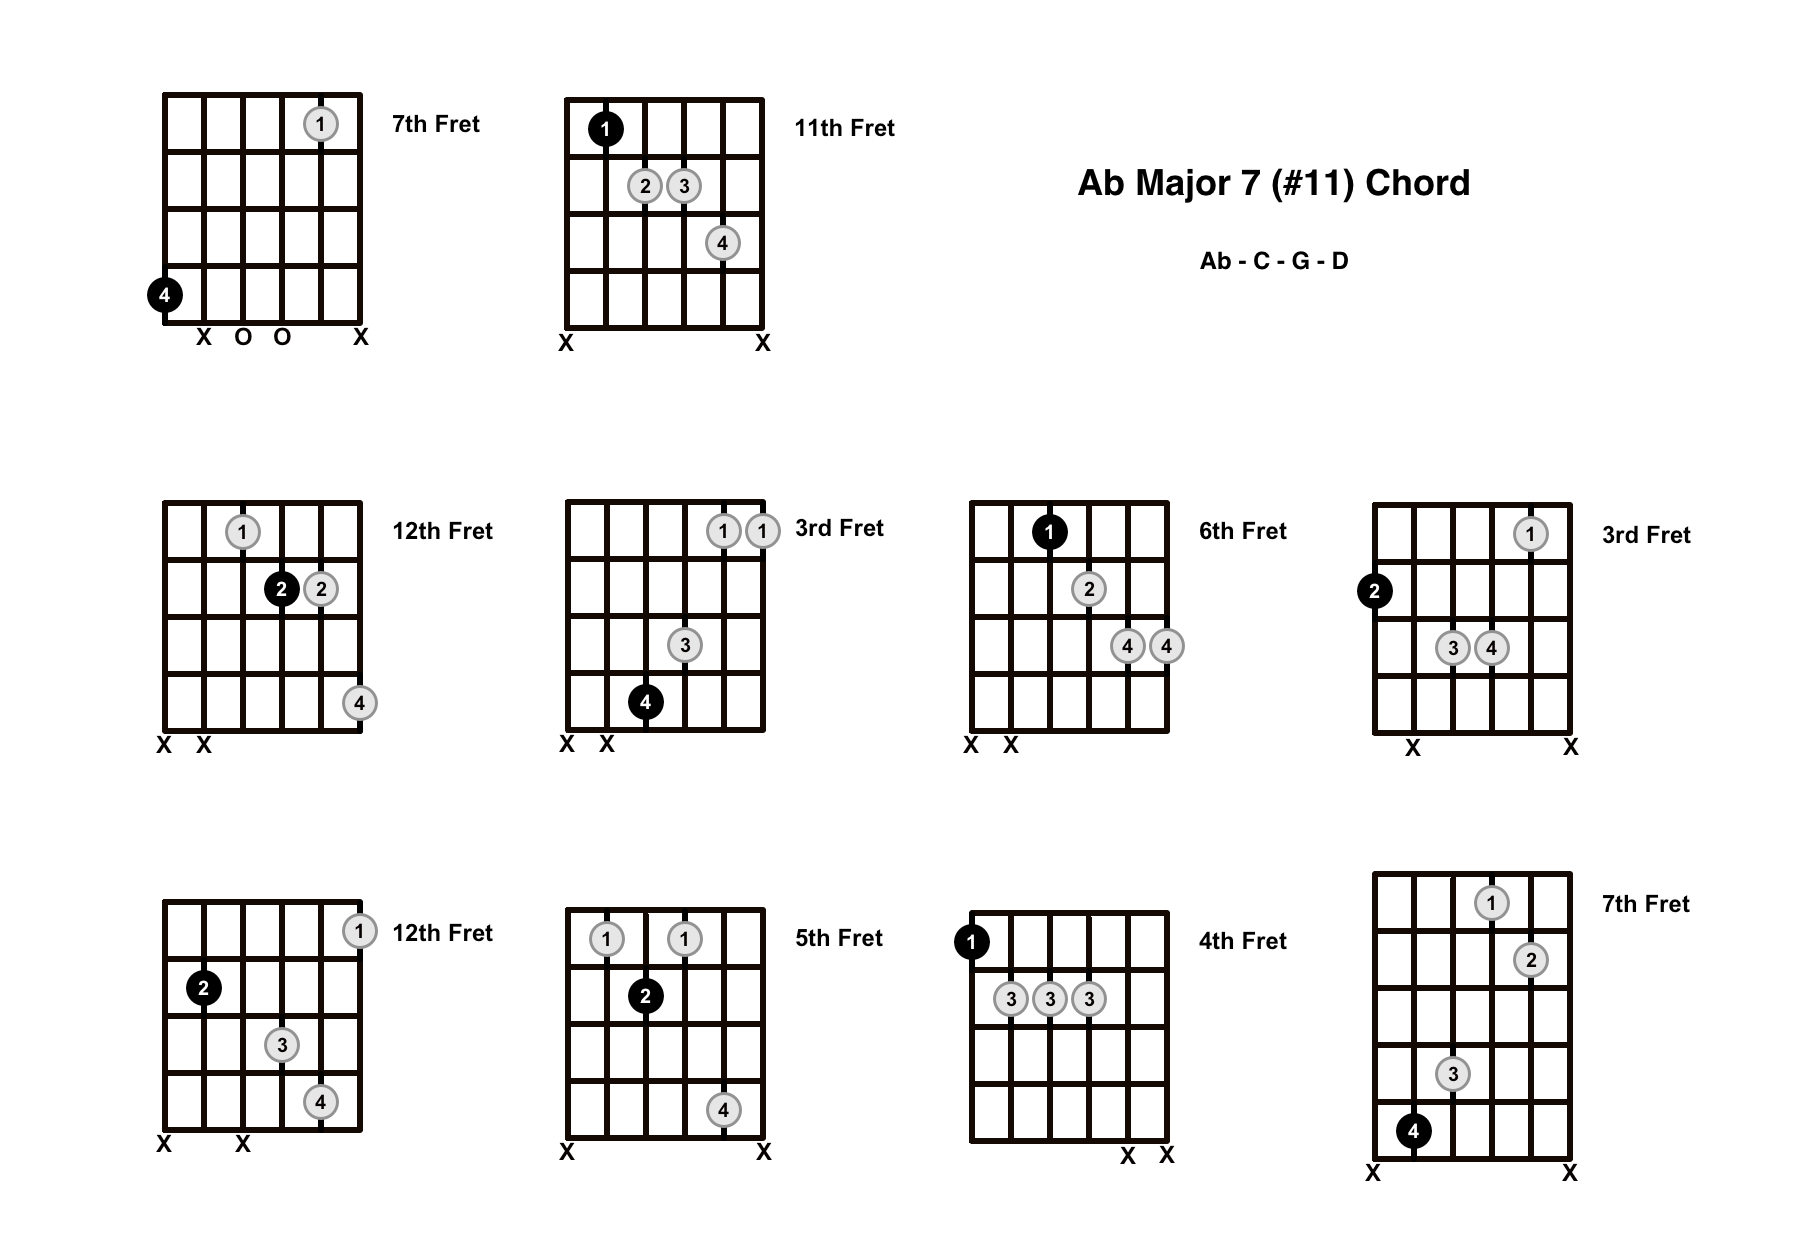 Abmaj7#11 Chord On The Guitar (A Flat Major 7 #11) – Diagrams, Finger Positions and Theory